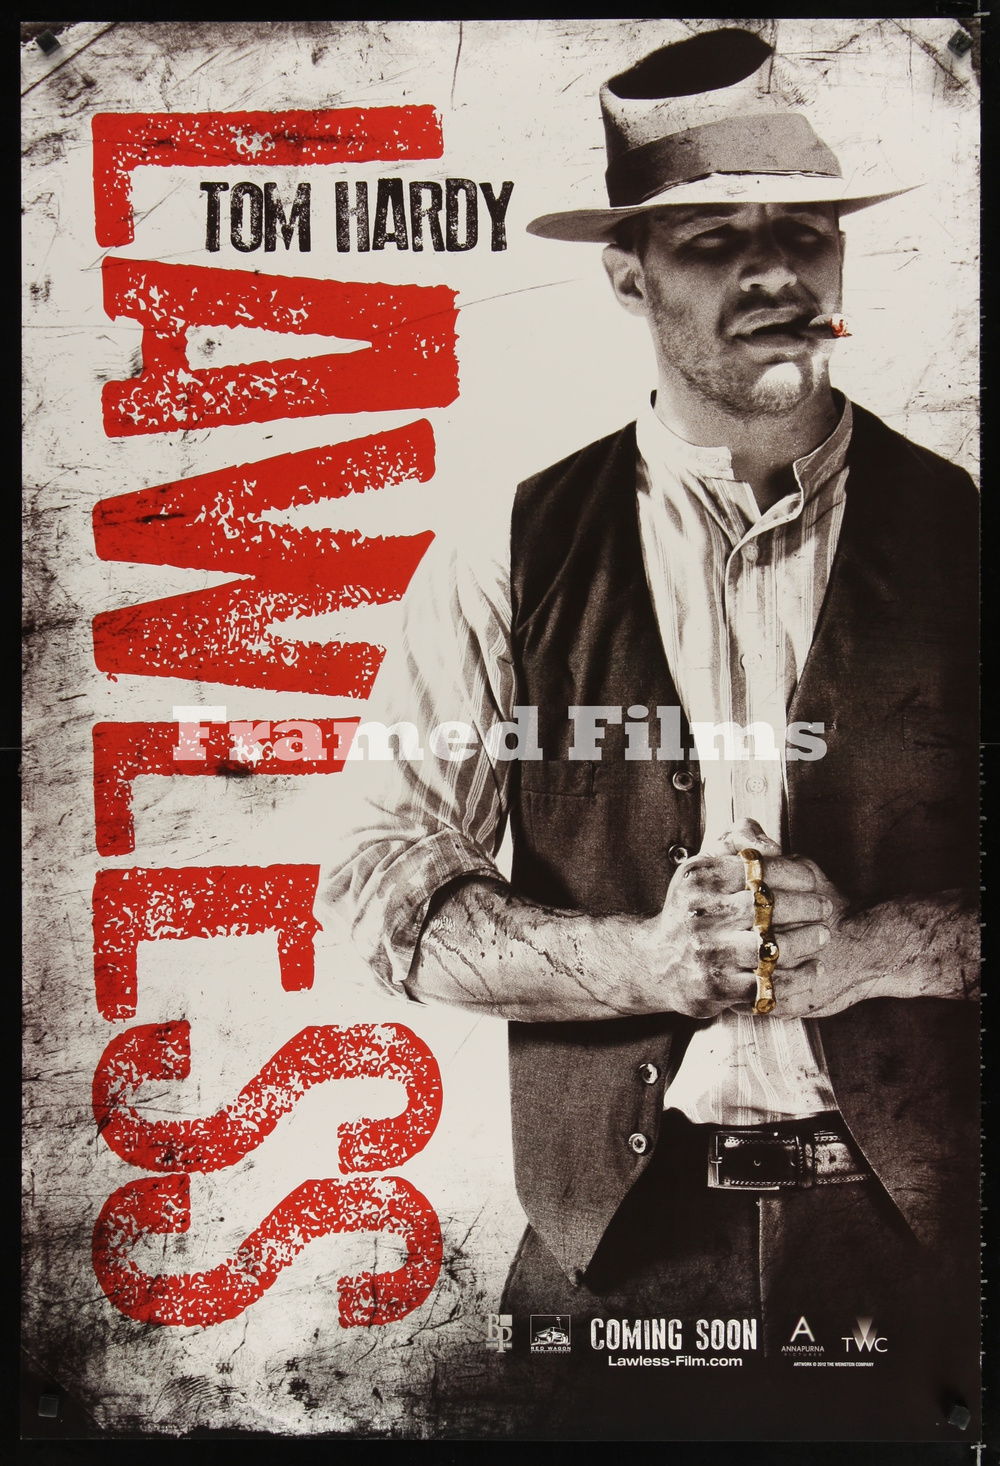 lawless_hardy_teaser_dupe2_JC07393_L.jpg